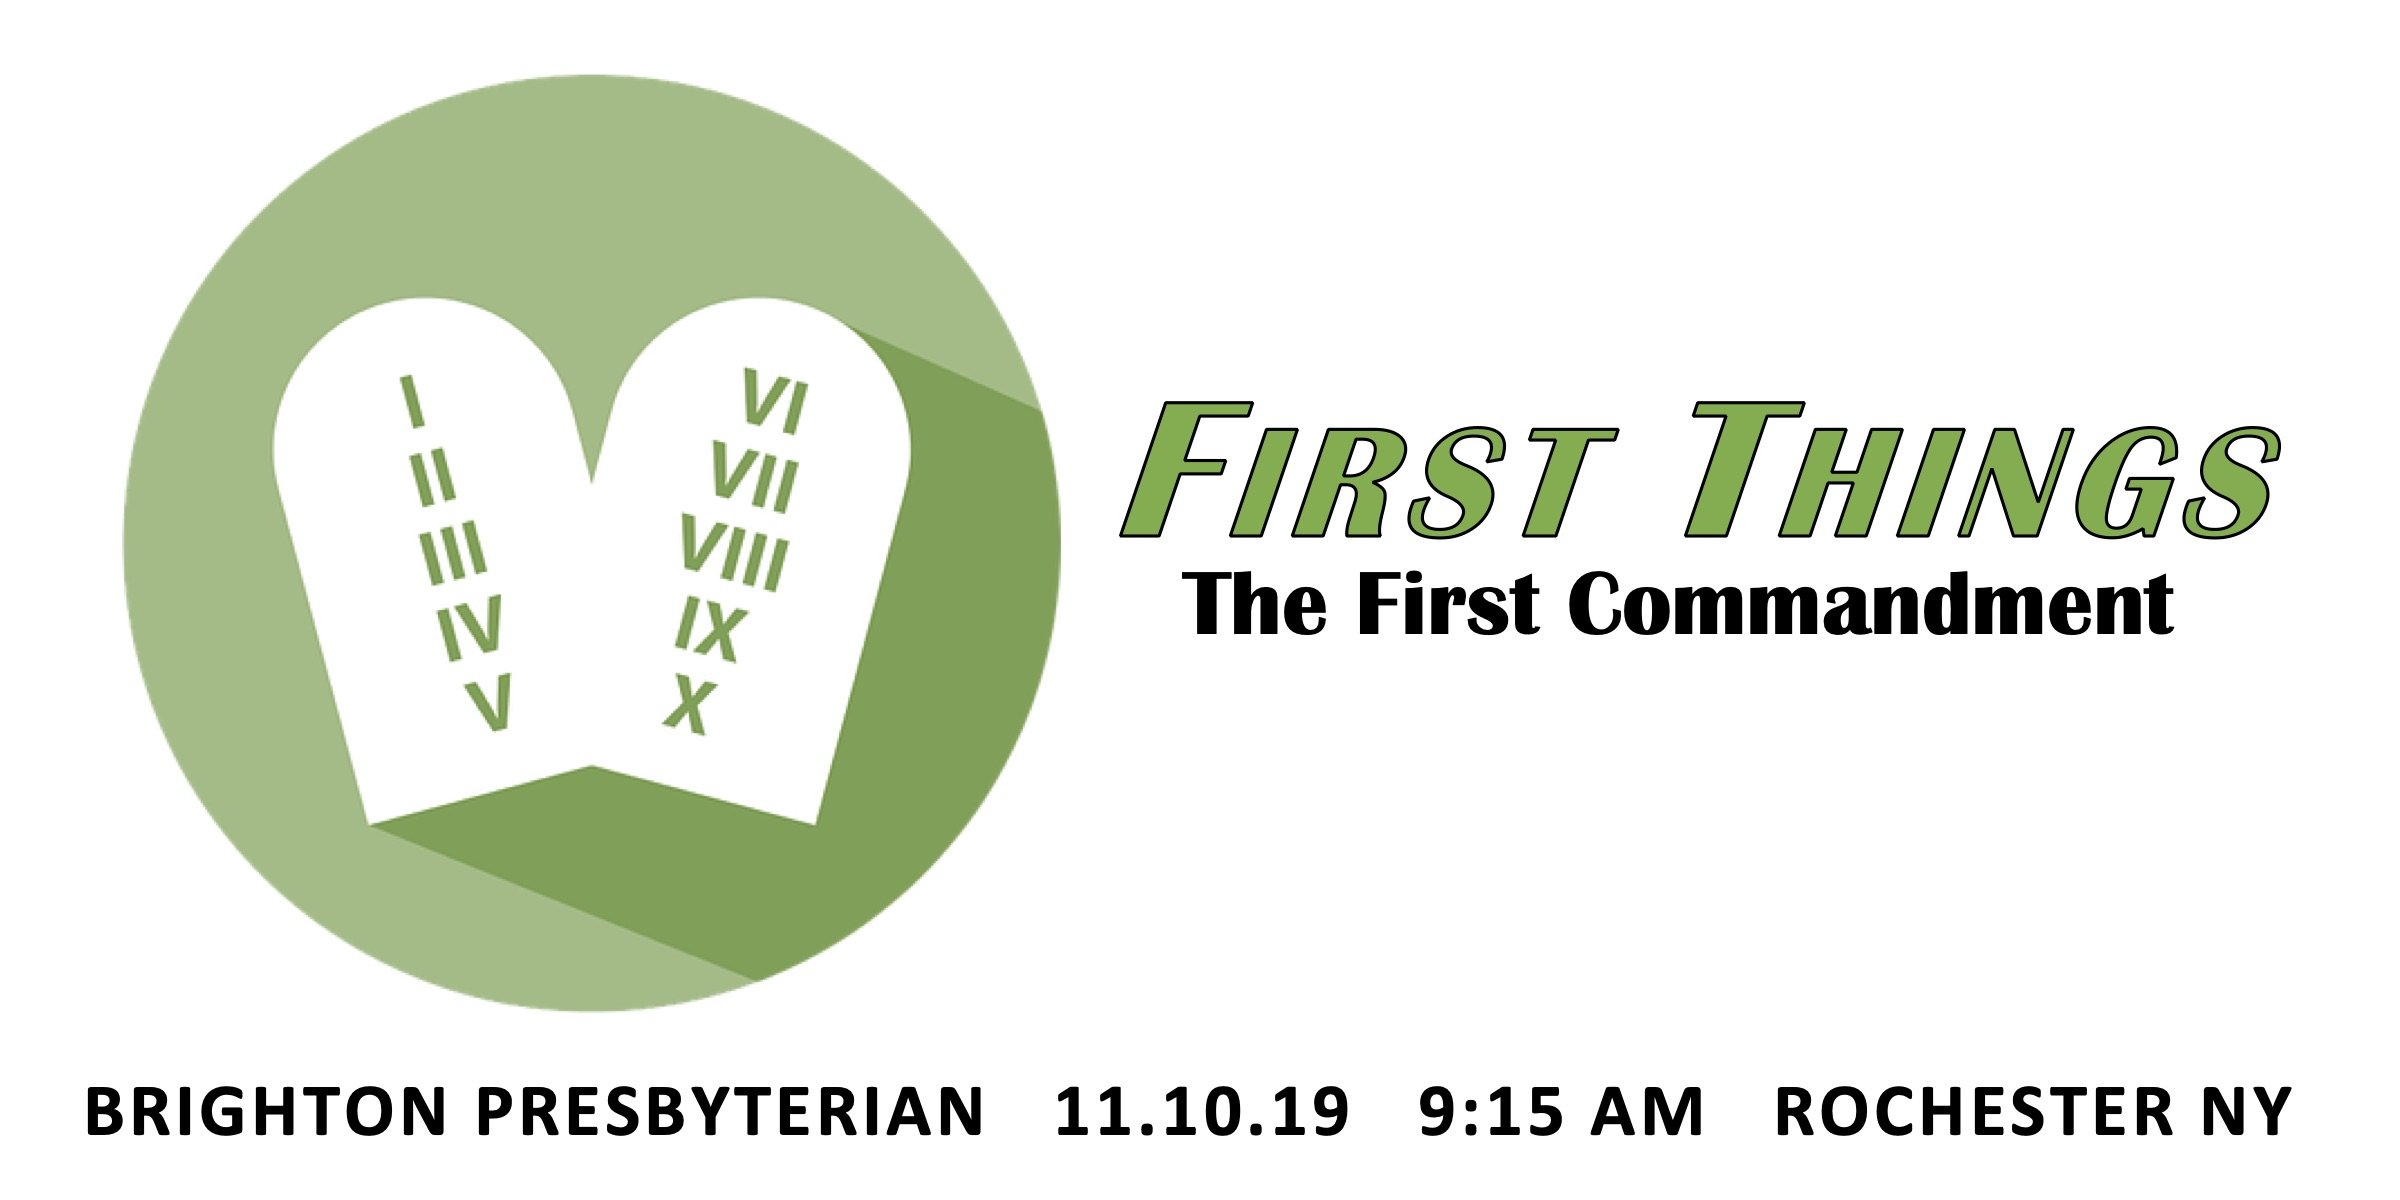 First Things: The First Commandment